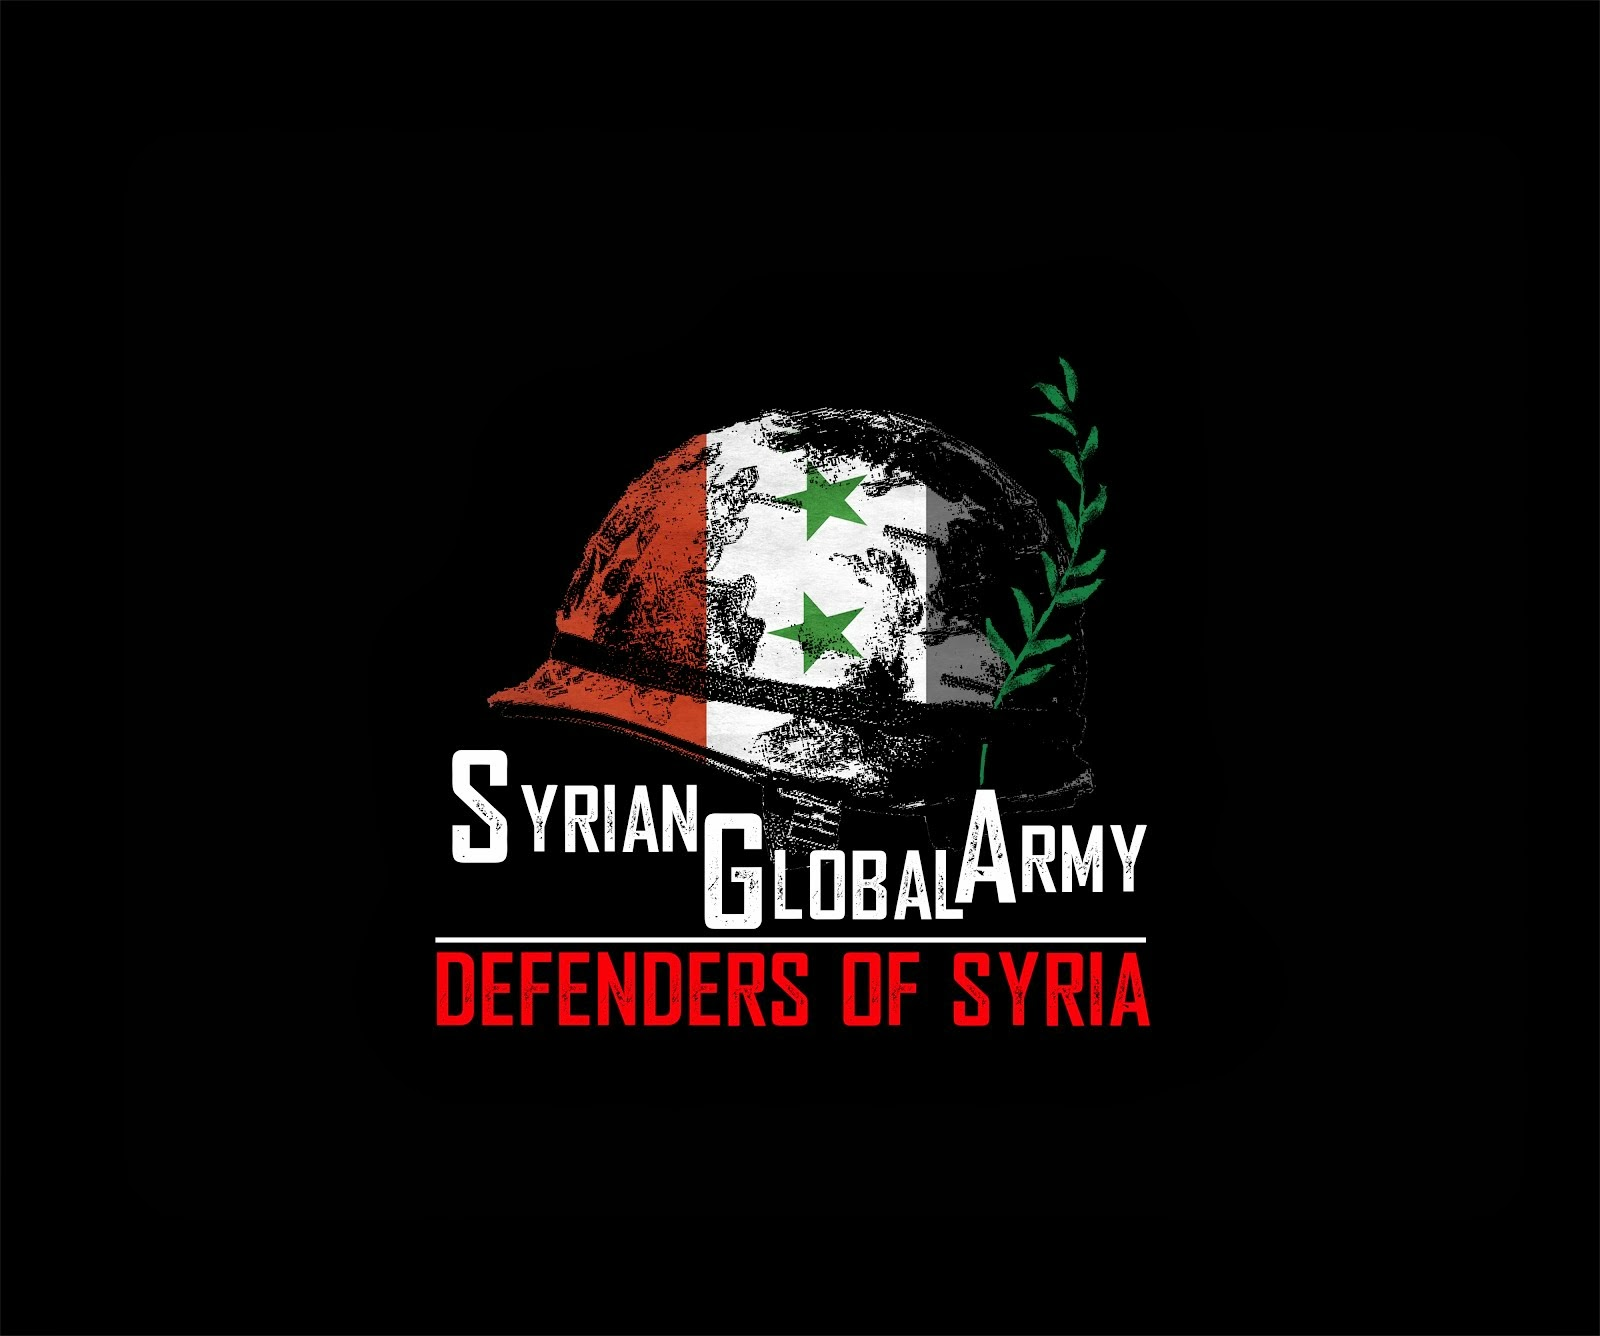 Syrian Global Army T-Shirt Store